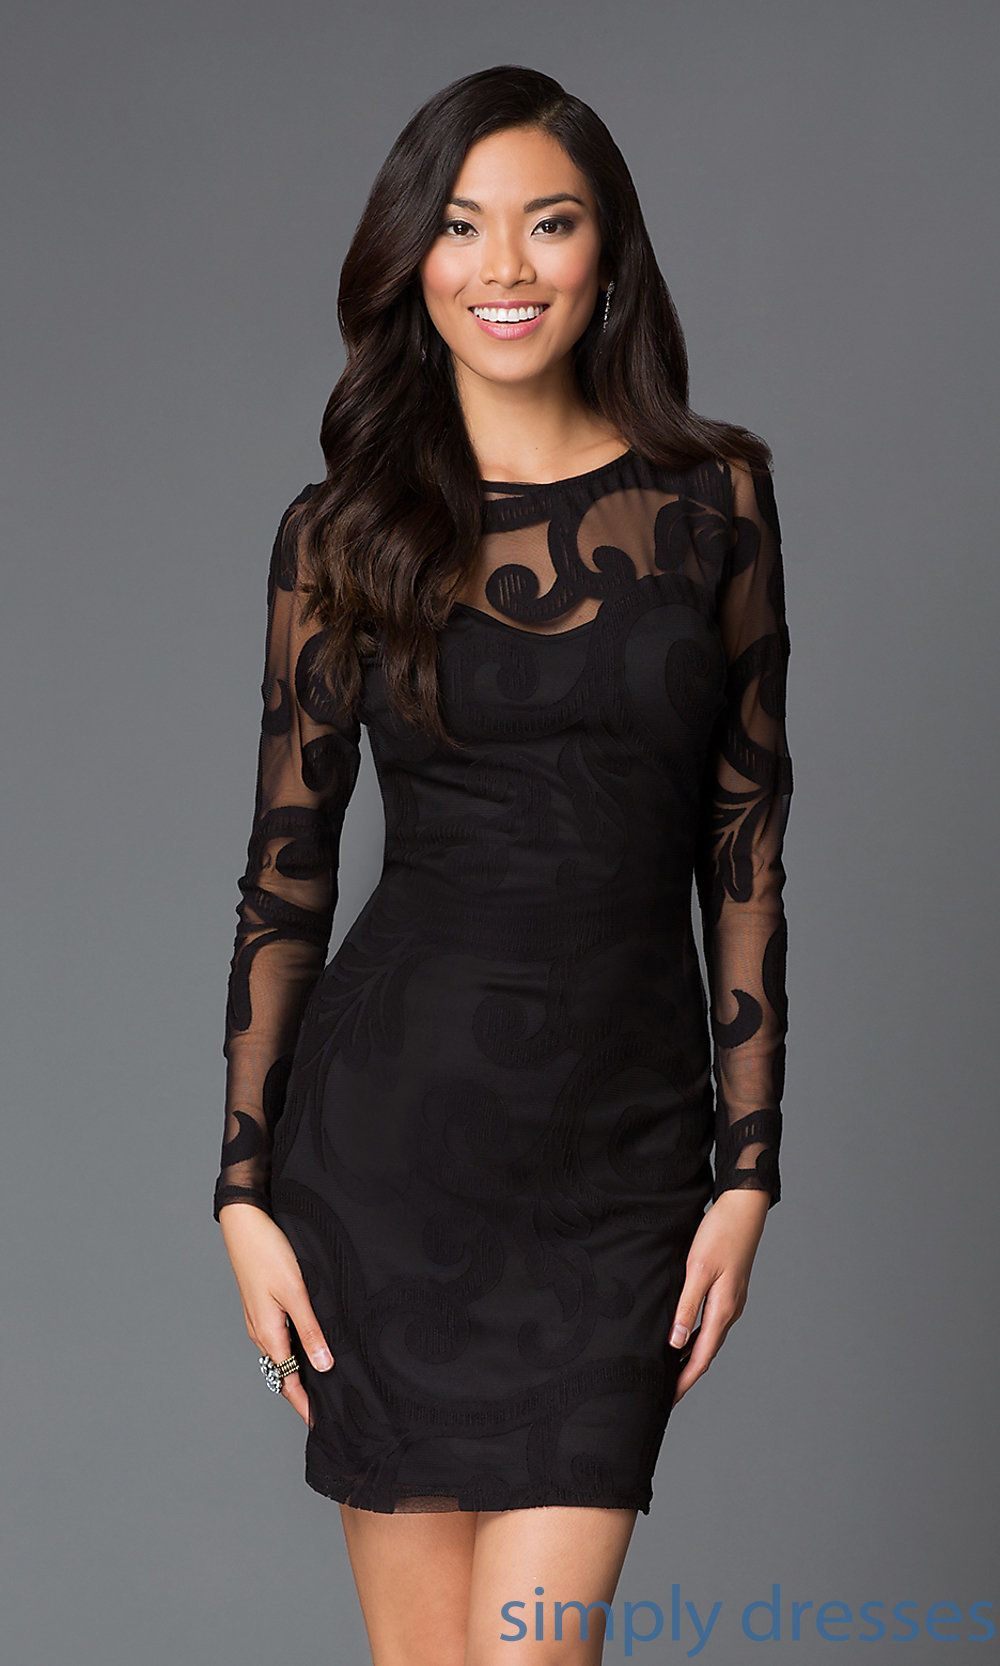 Black dress for party - Shop Simply Dresses For Homecoming Party Dresses 2015 Prom Dresses Evening Gowns Cocktail